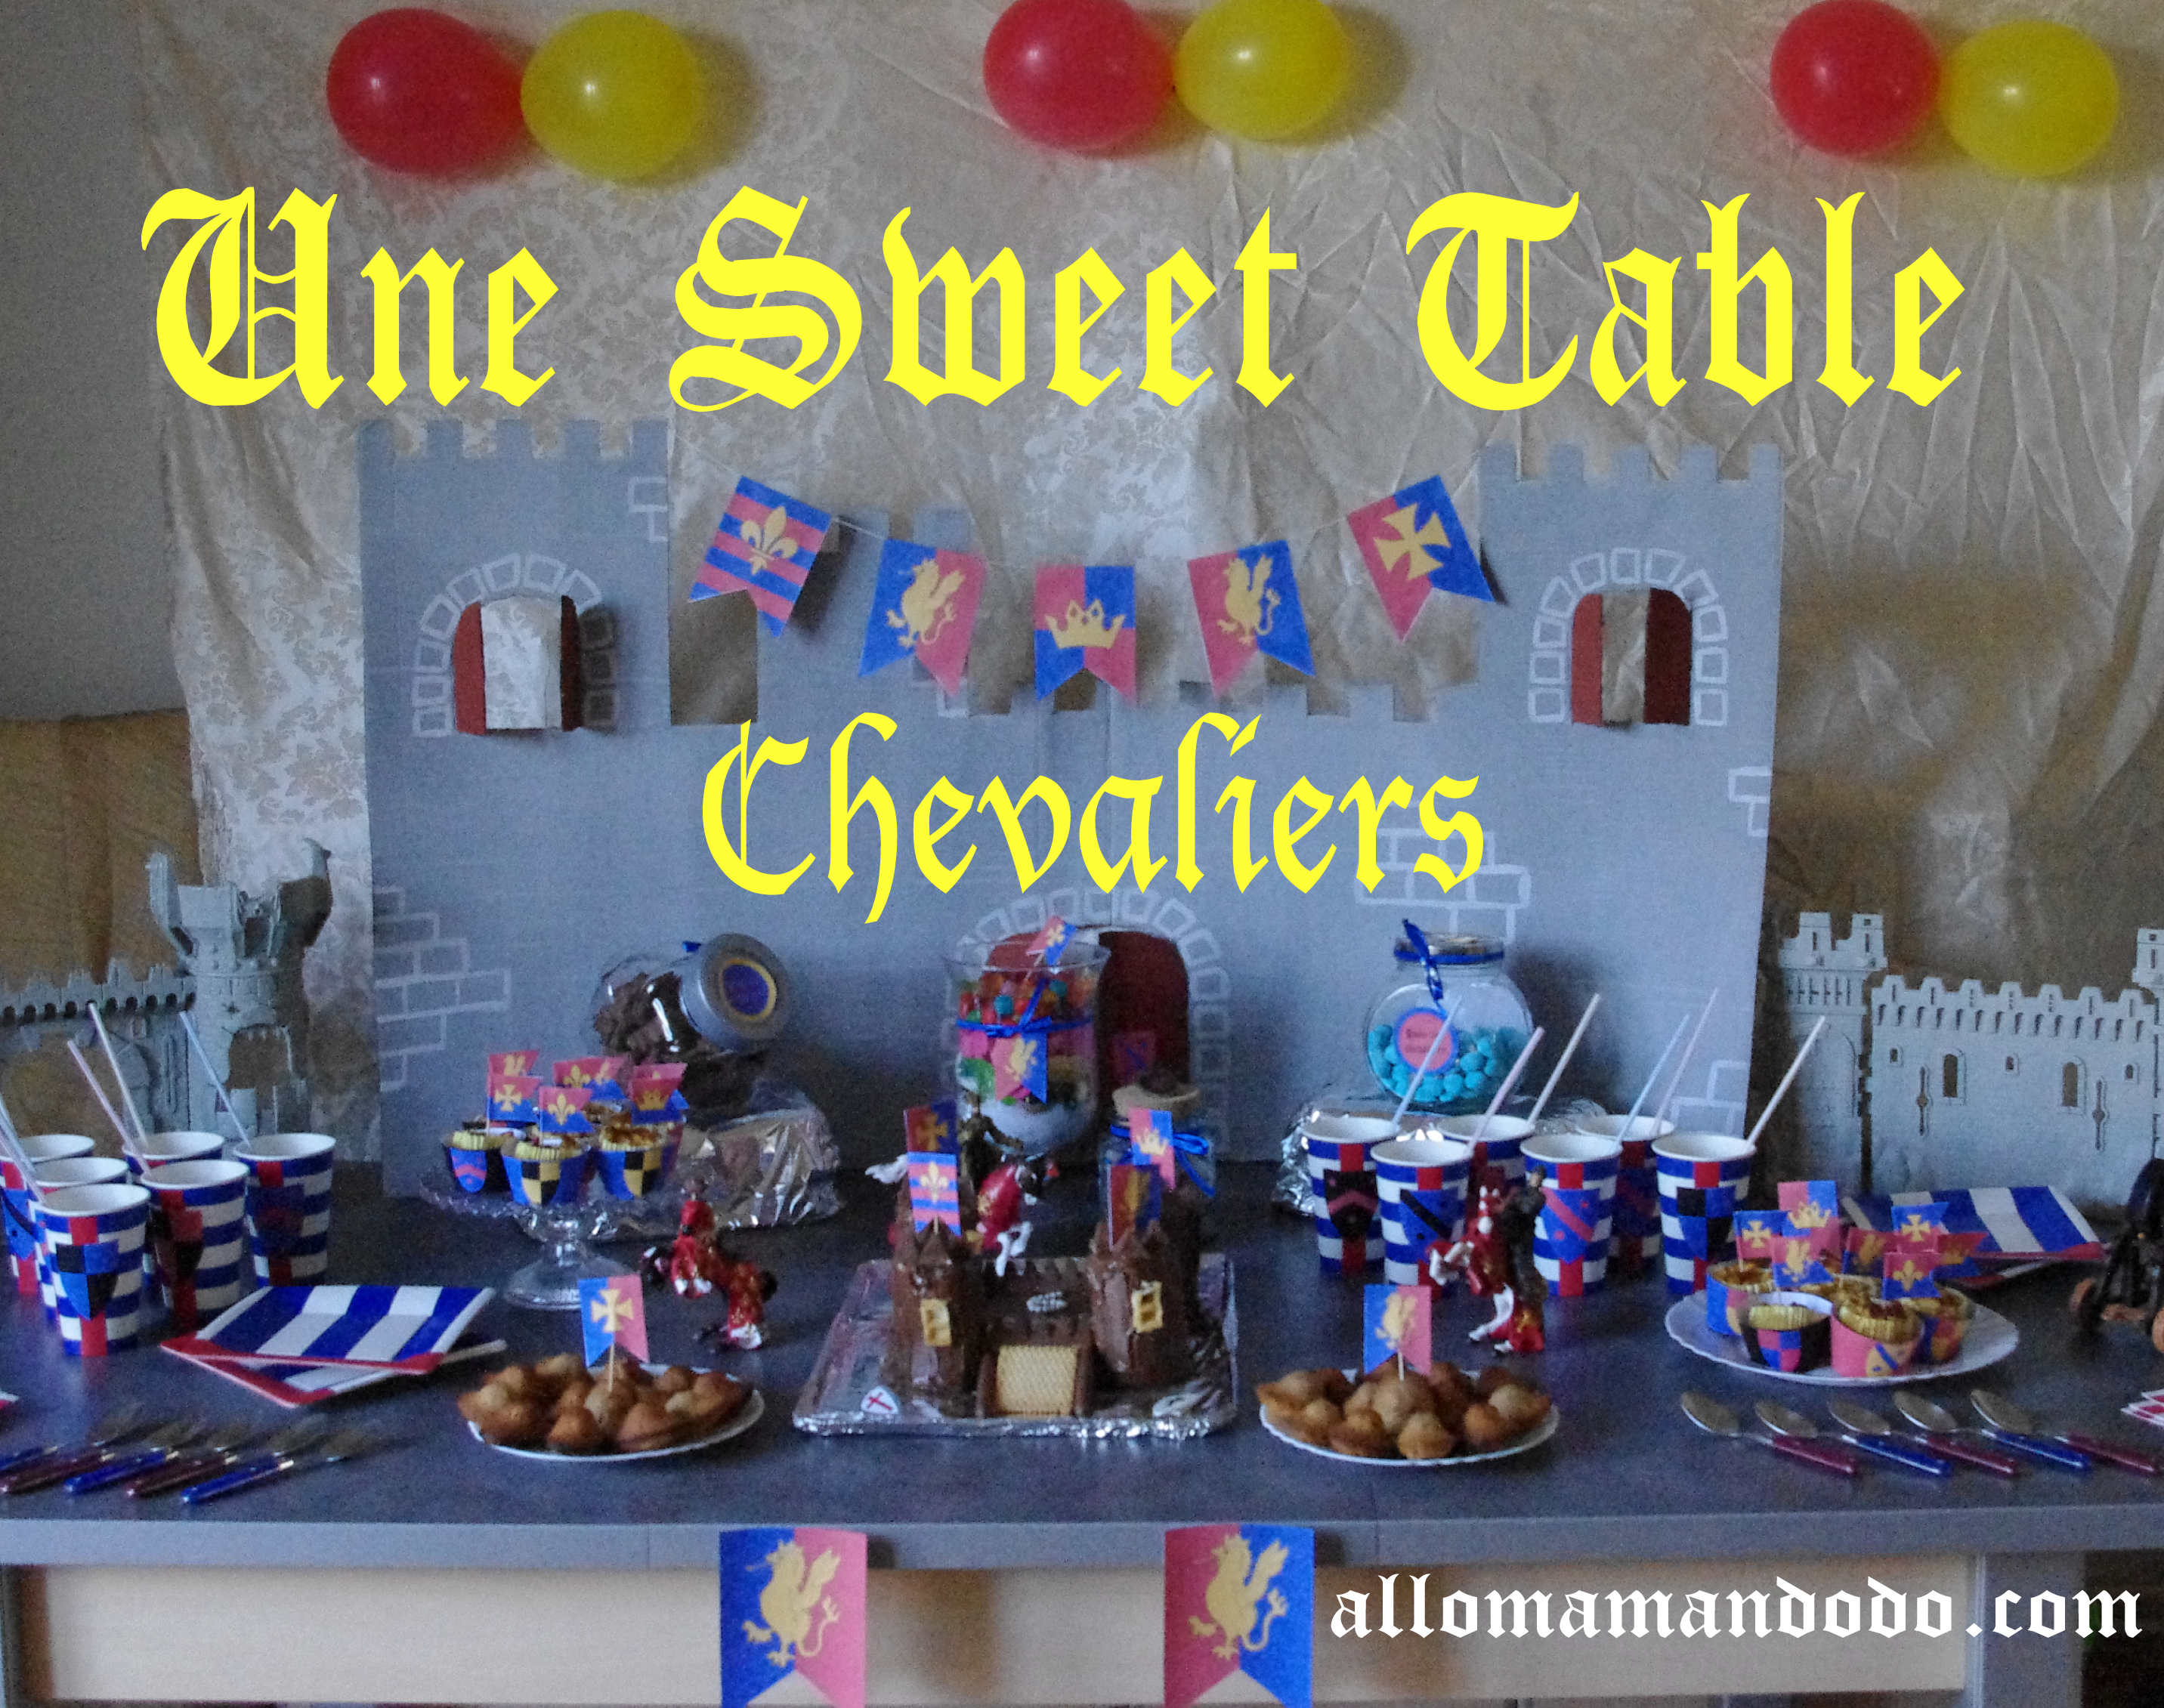 un anniversaire de chevalier sweet table id es d co diy kit imprimer allo maman dodo. Black Bedroom Furniture Sets. Home Design Ideas